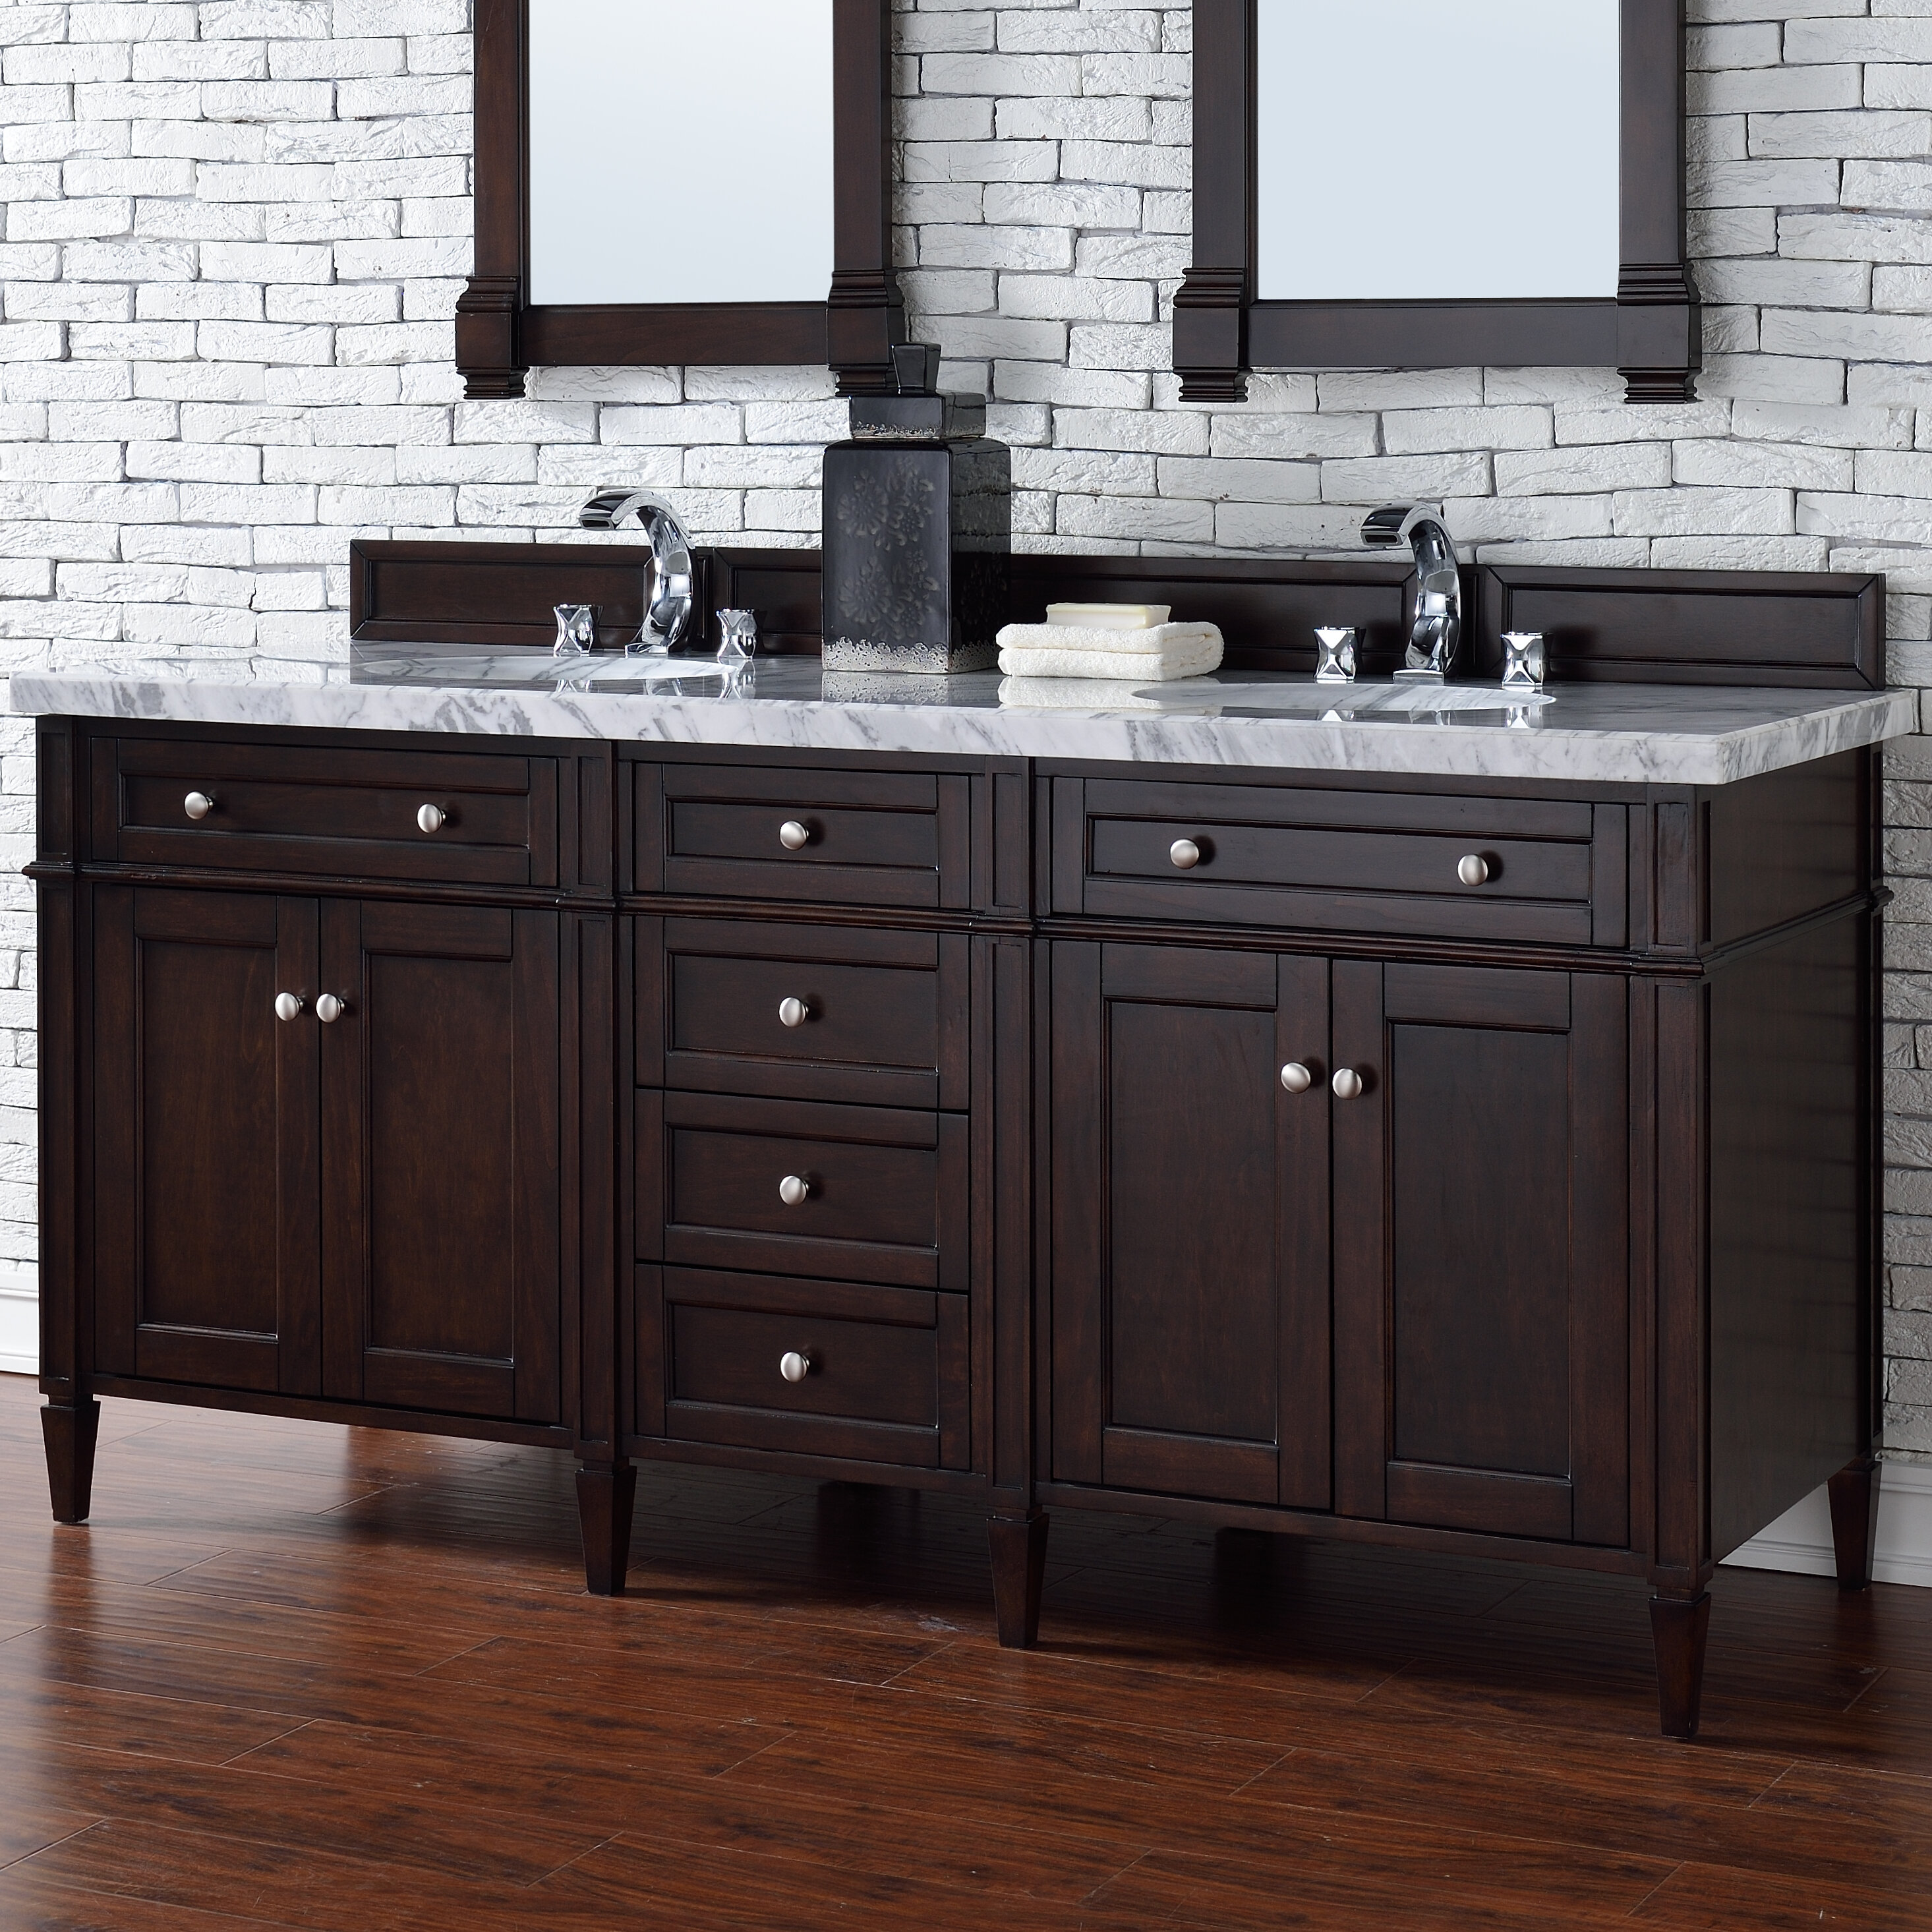 James Martin Furniture Brittany 72 Double Bathroom Vanity Base Only